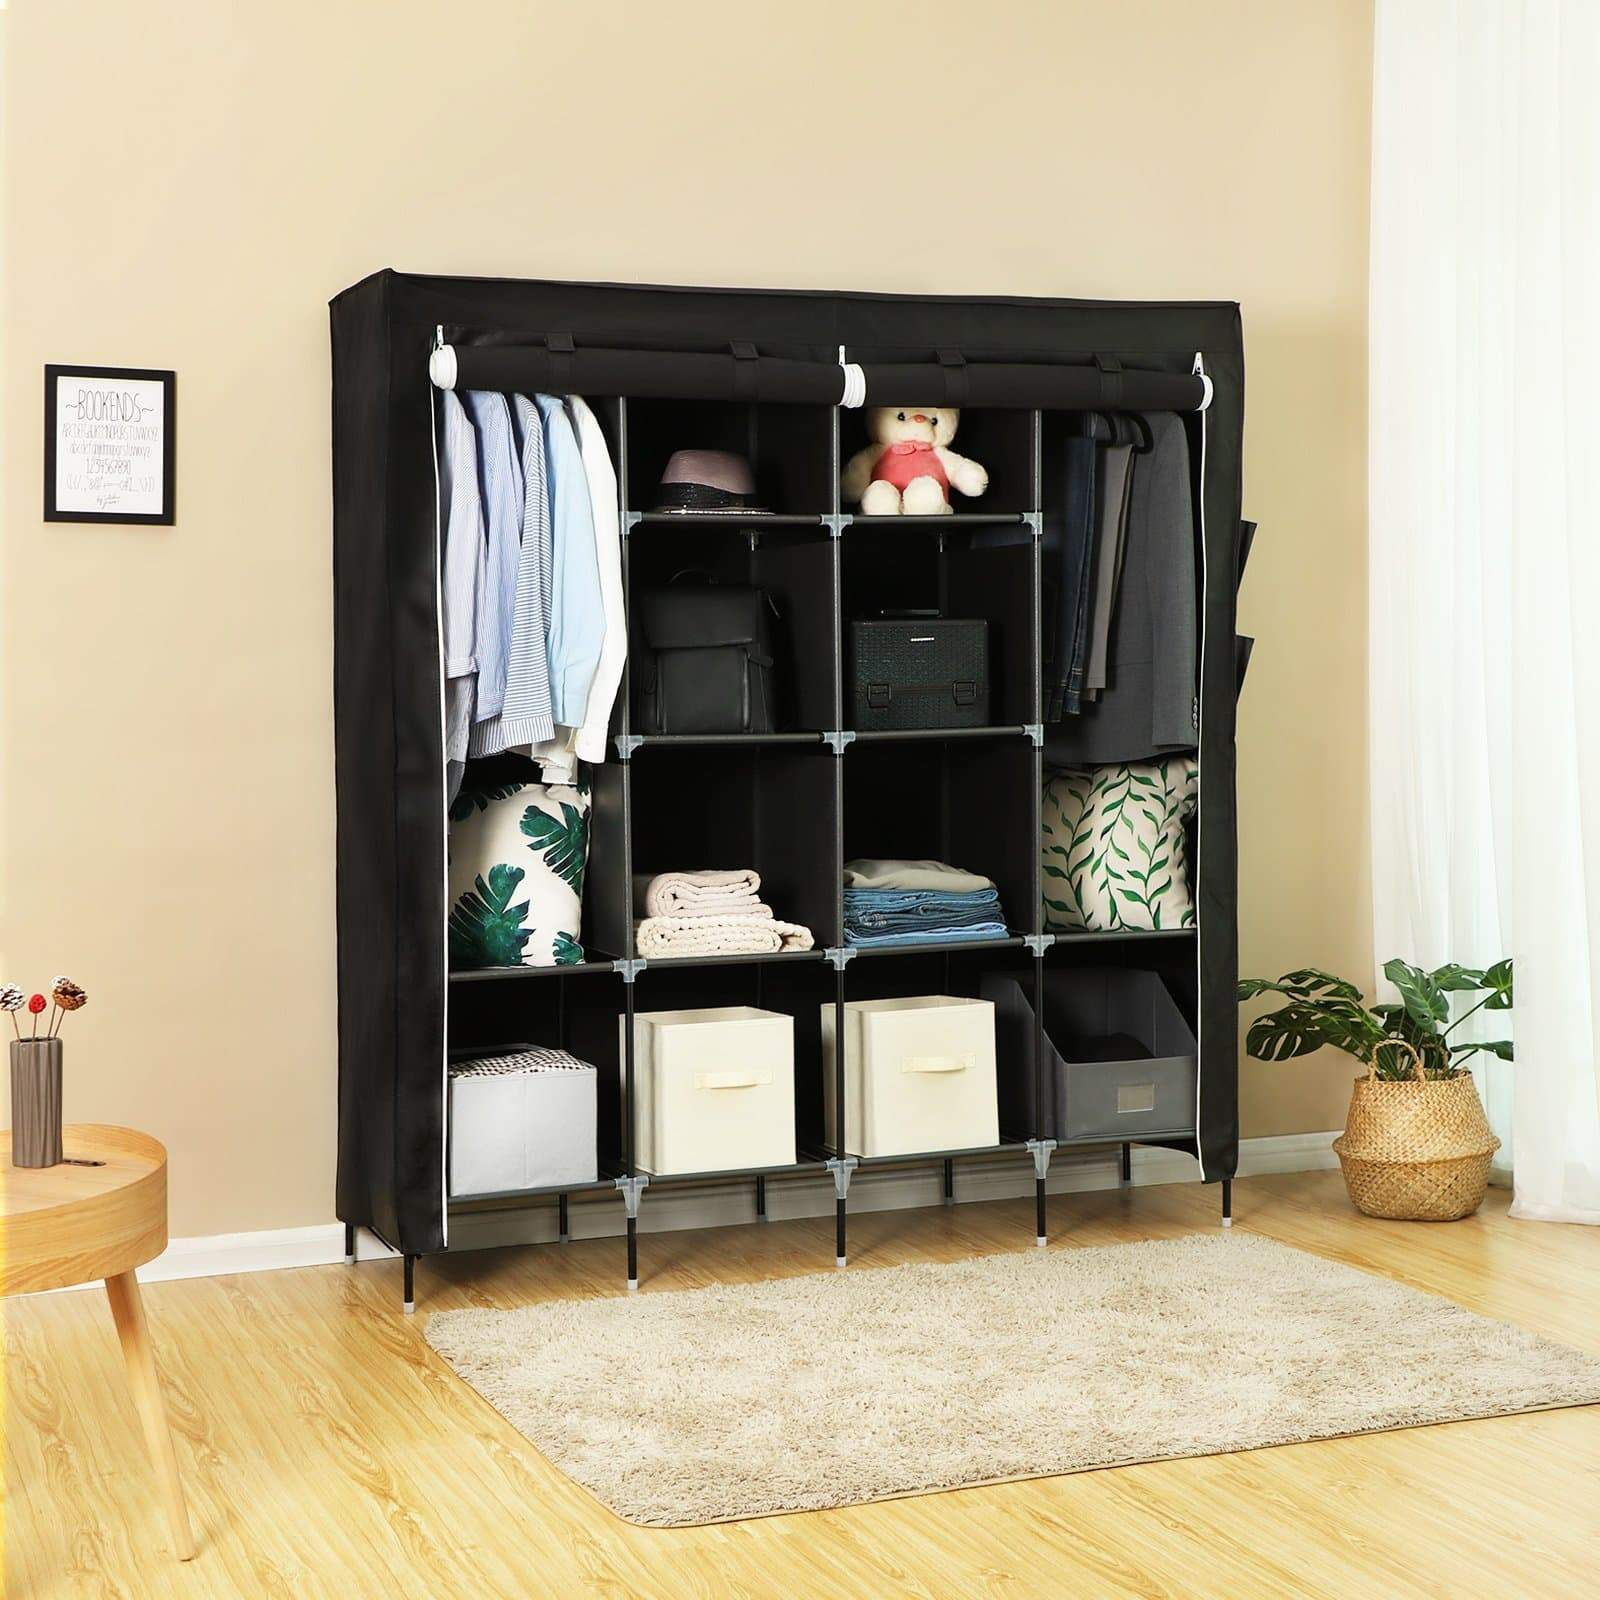 Save songmics 67 inch wardrobe armoire closet clothes storage rack 12 shelves 4 side pockets quick and easy to assemble black uryg44h